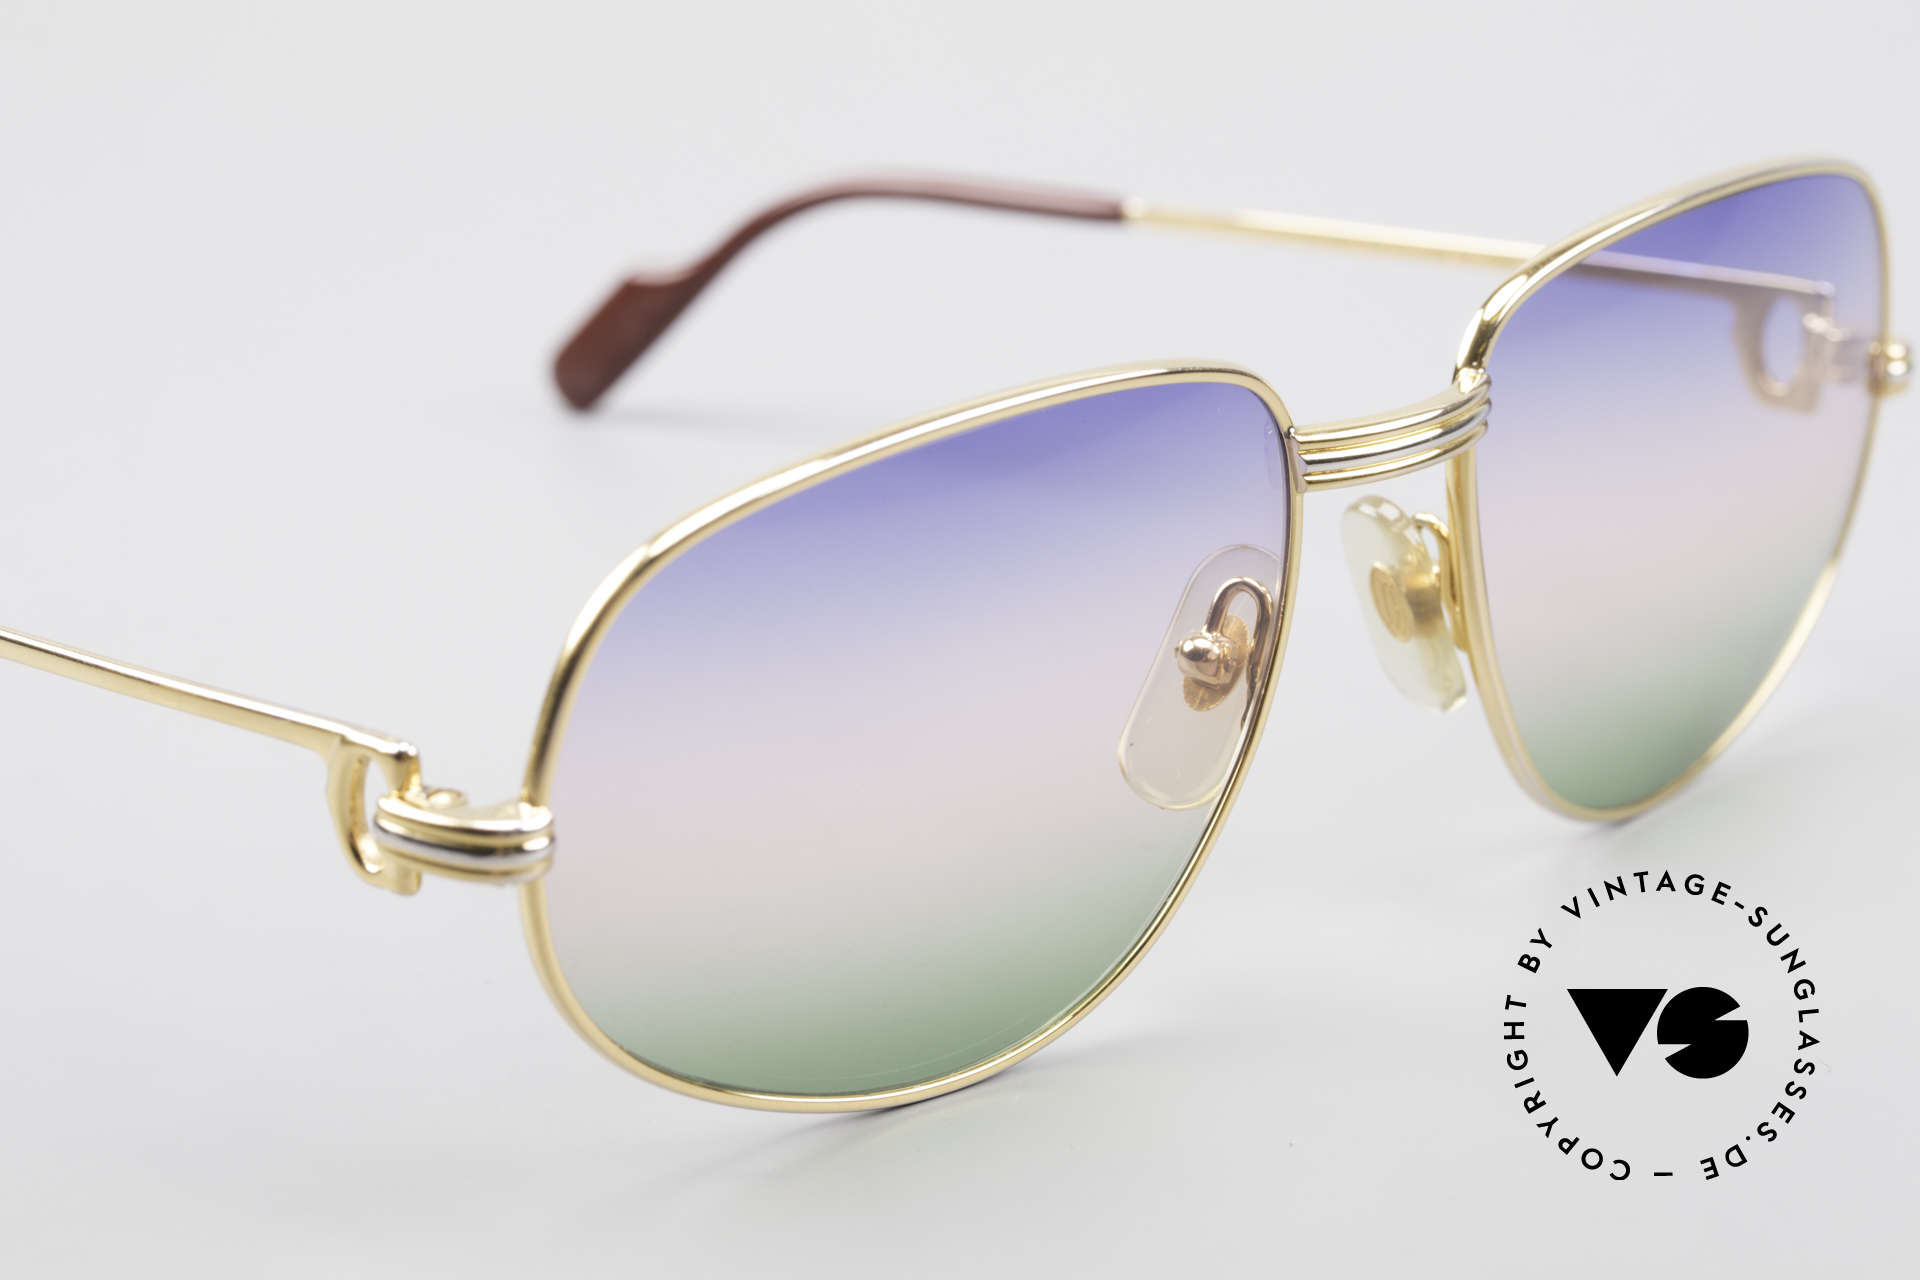 Cartier Romance LC - M Rare 80's Designer Sunglasses, with new tricolor-gradient sun lenses (fancy & high-class), Made for Men and Women